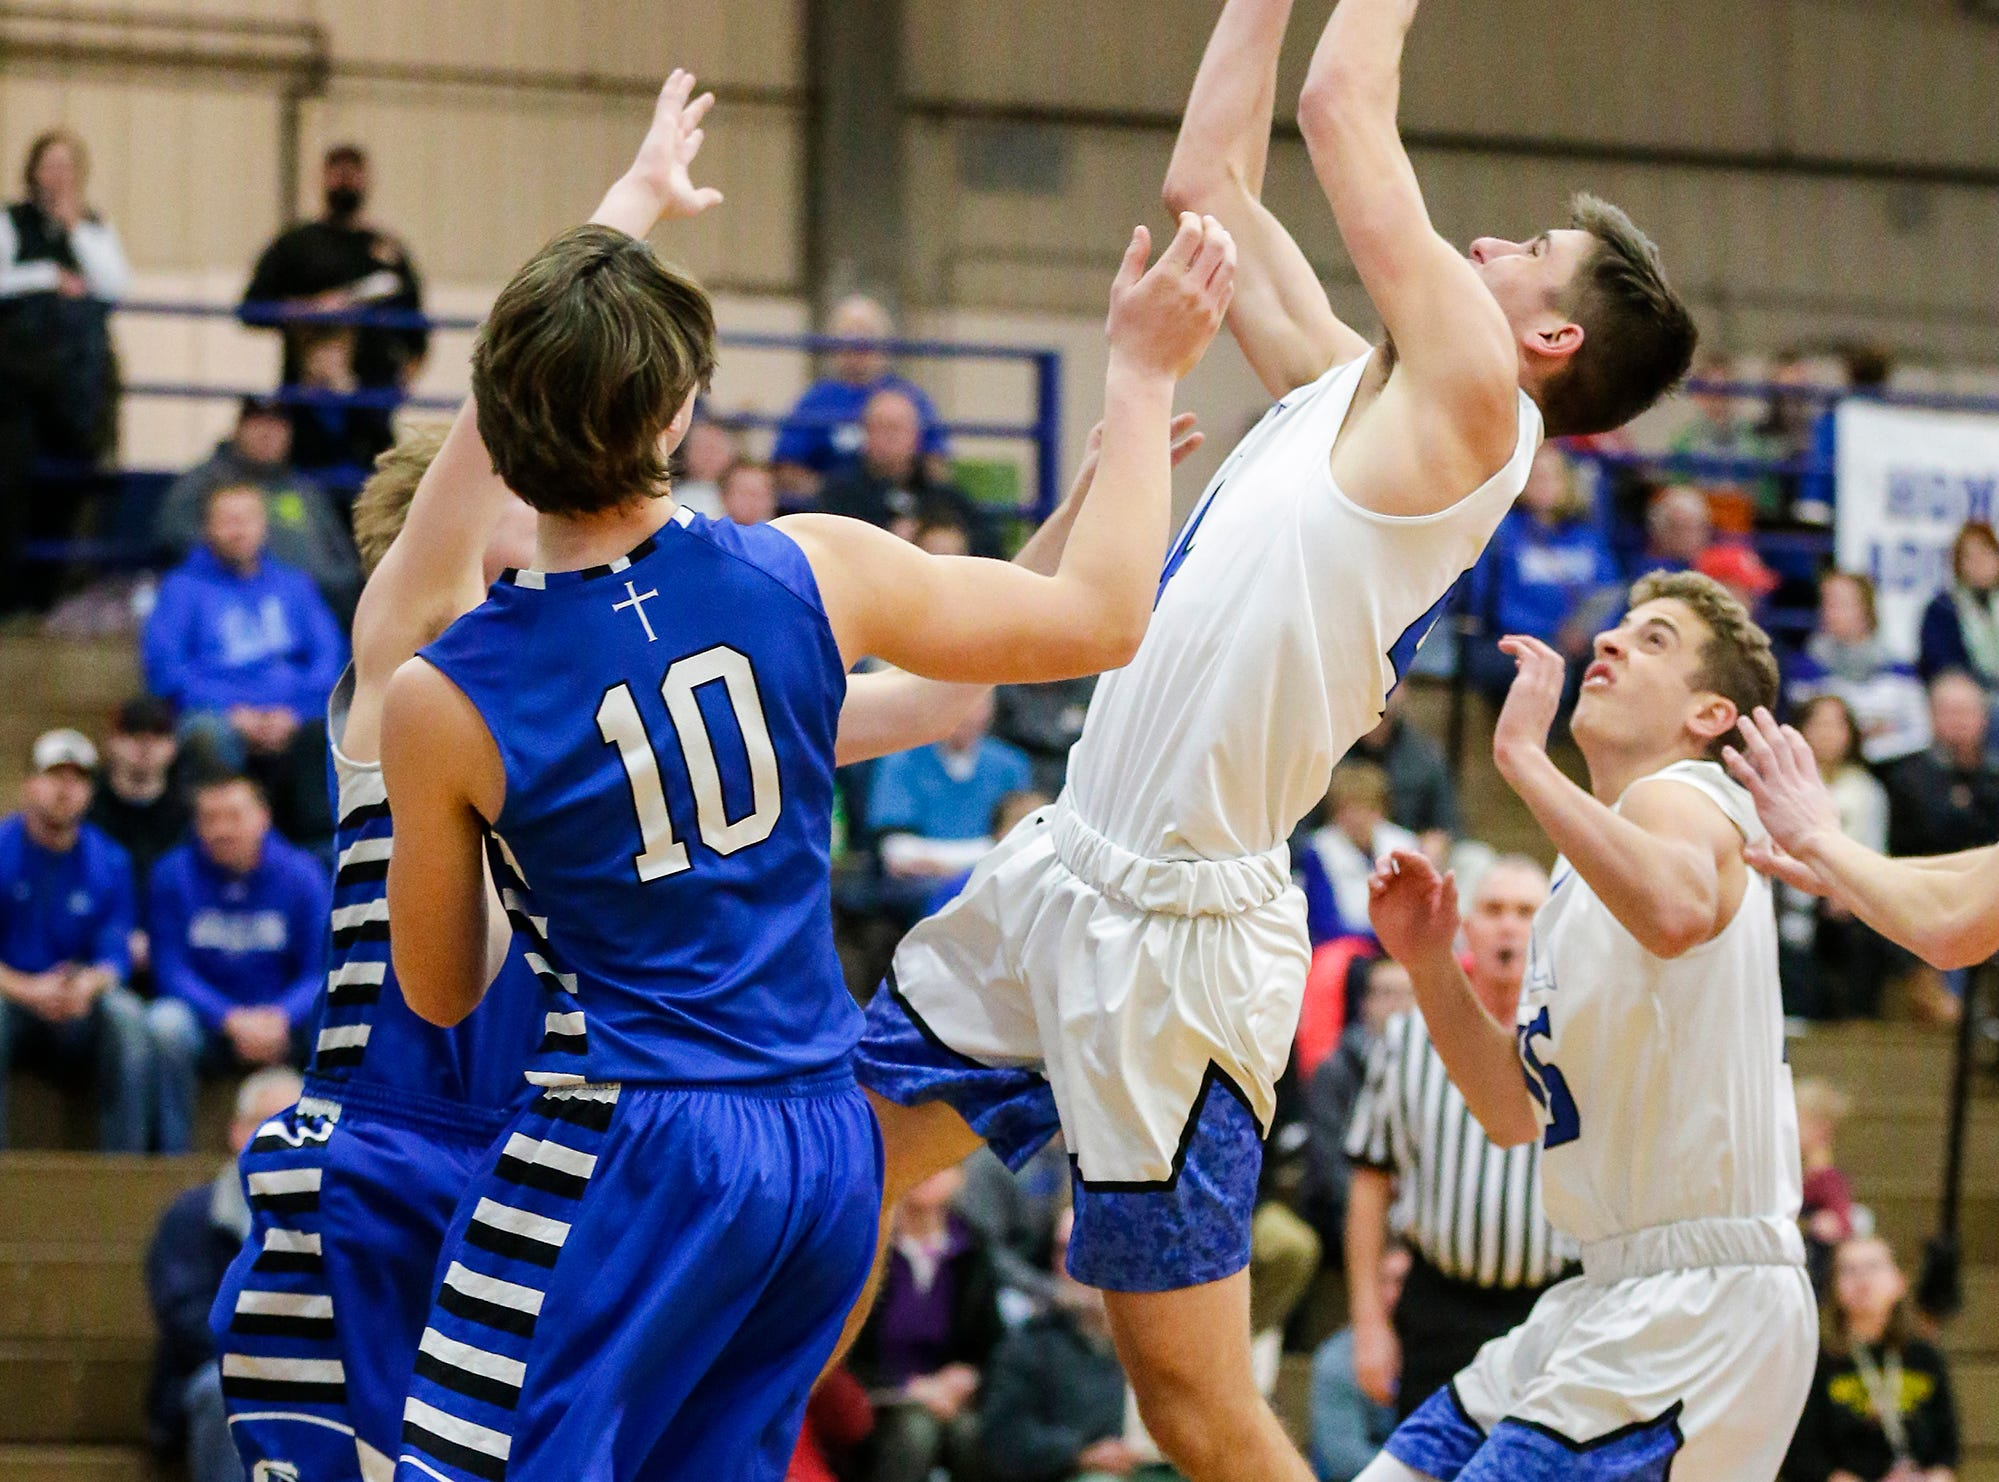 Winnebago Lutheran Academy boys basketball's Benji Cole gets a rebound against St. Mary's Springs Academy Tuesday, January 8, 2019 during their game in Fond du Lac. Winnebago Lutheran Academy won the game 69-66. Doug Raflik/USA TODAY NETWORK-Wisconsin